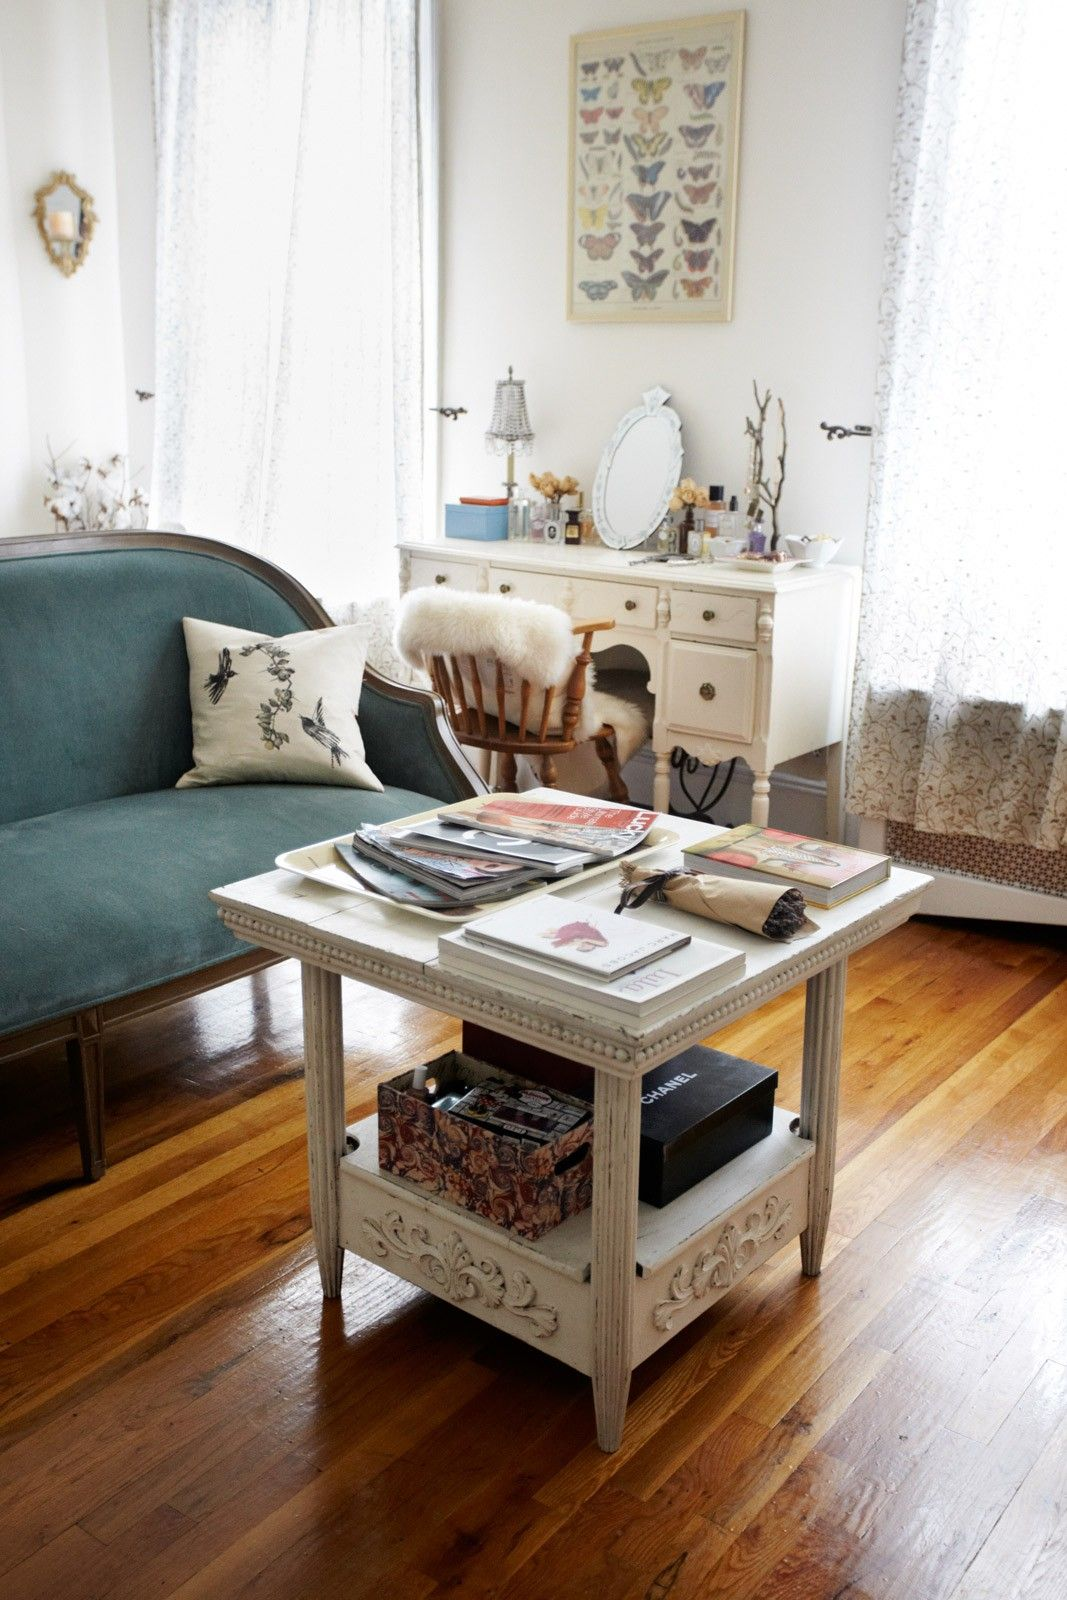 Small space design ideas small spaces huge inspiration see all our - House